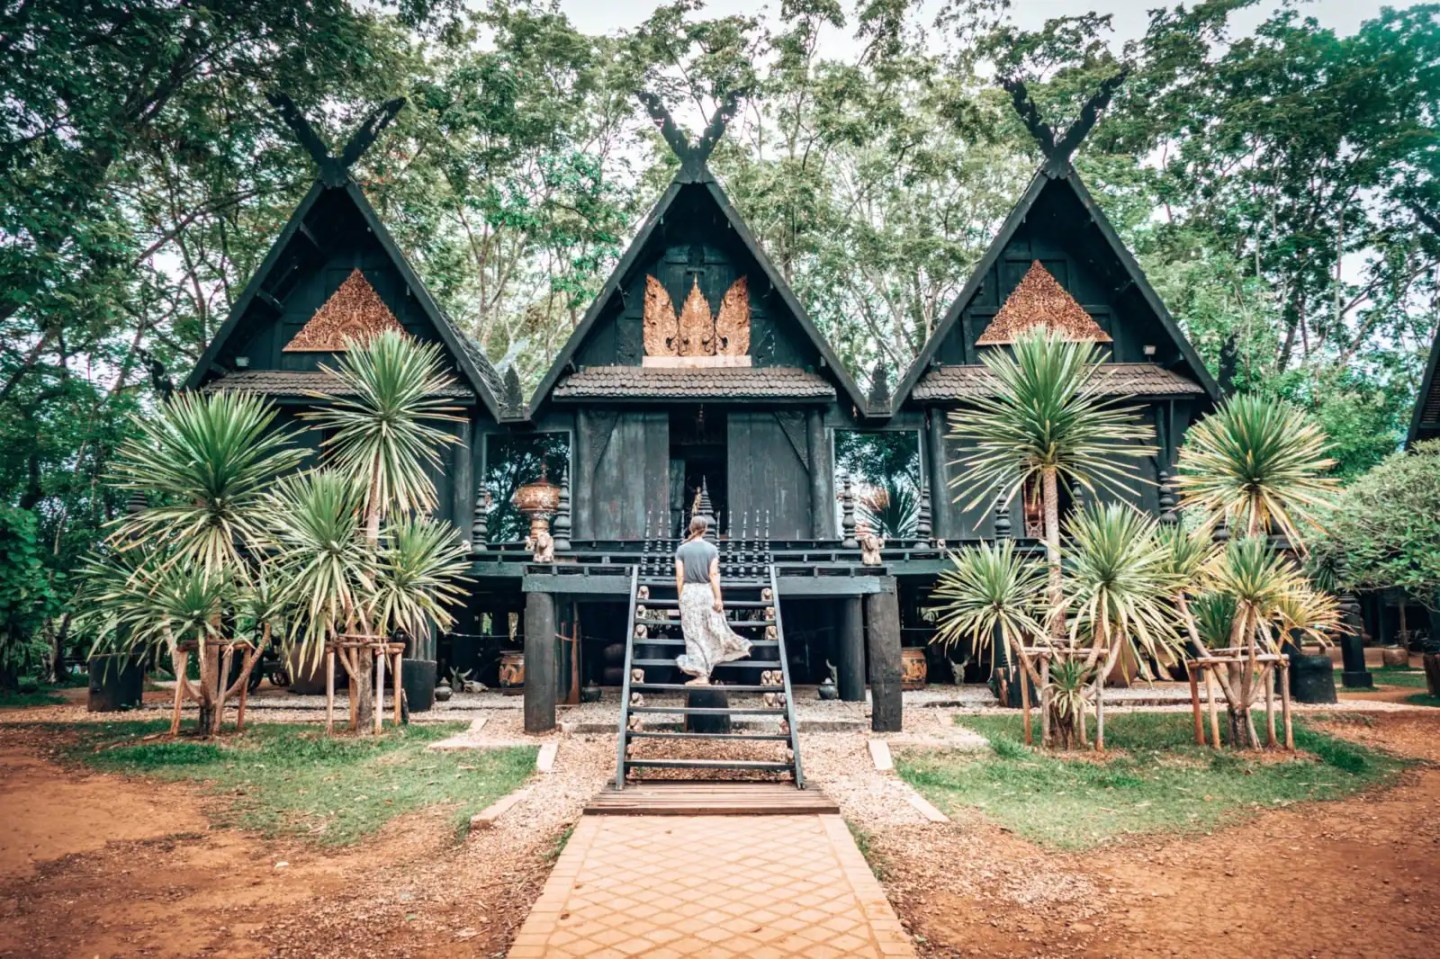 The Black House, Baan Dam, Chiang Rai